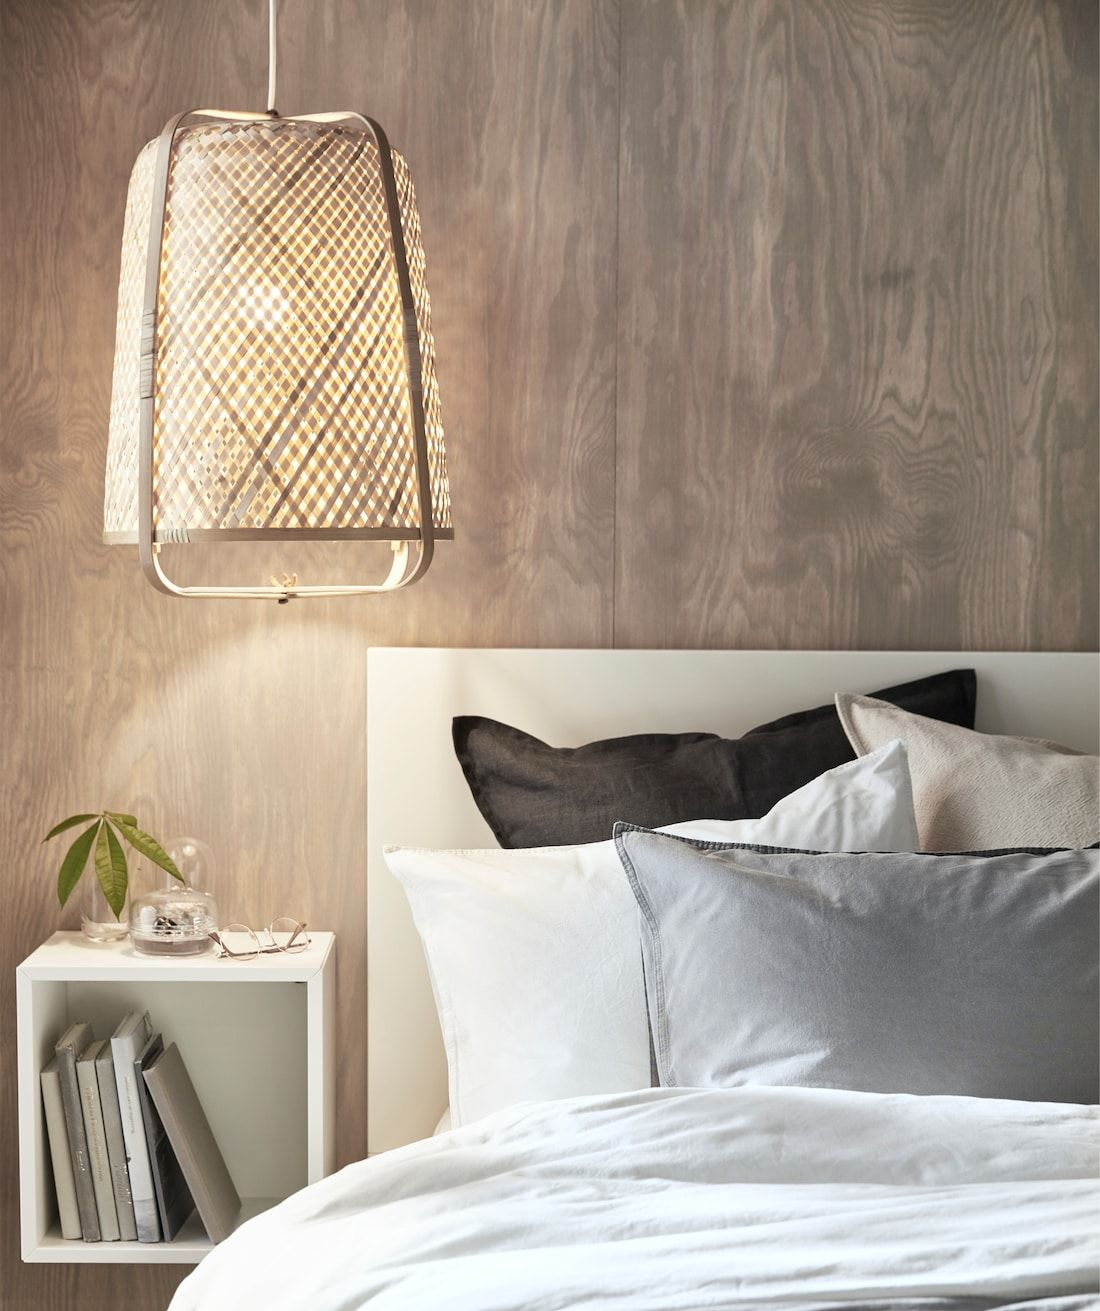 Minimalist luxury in a small and stylish bedroom in 2020